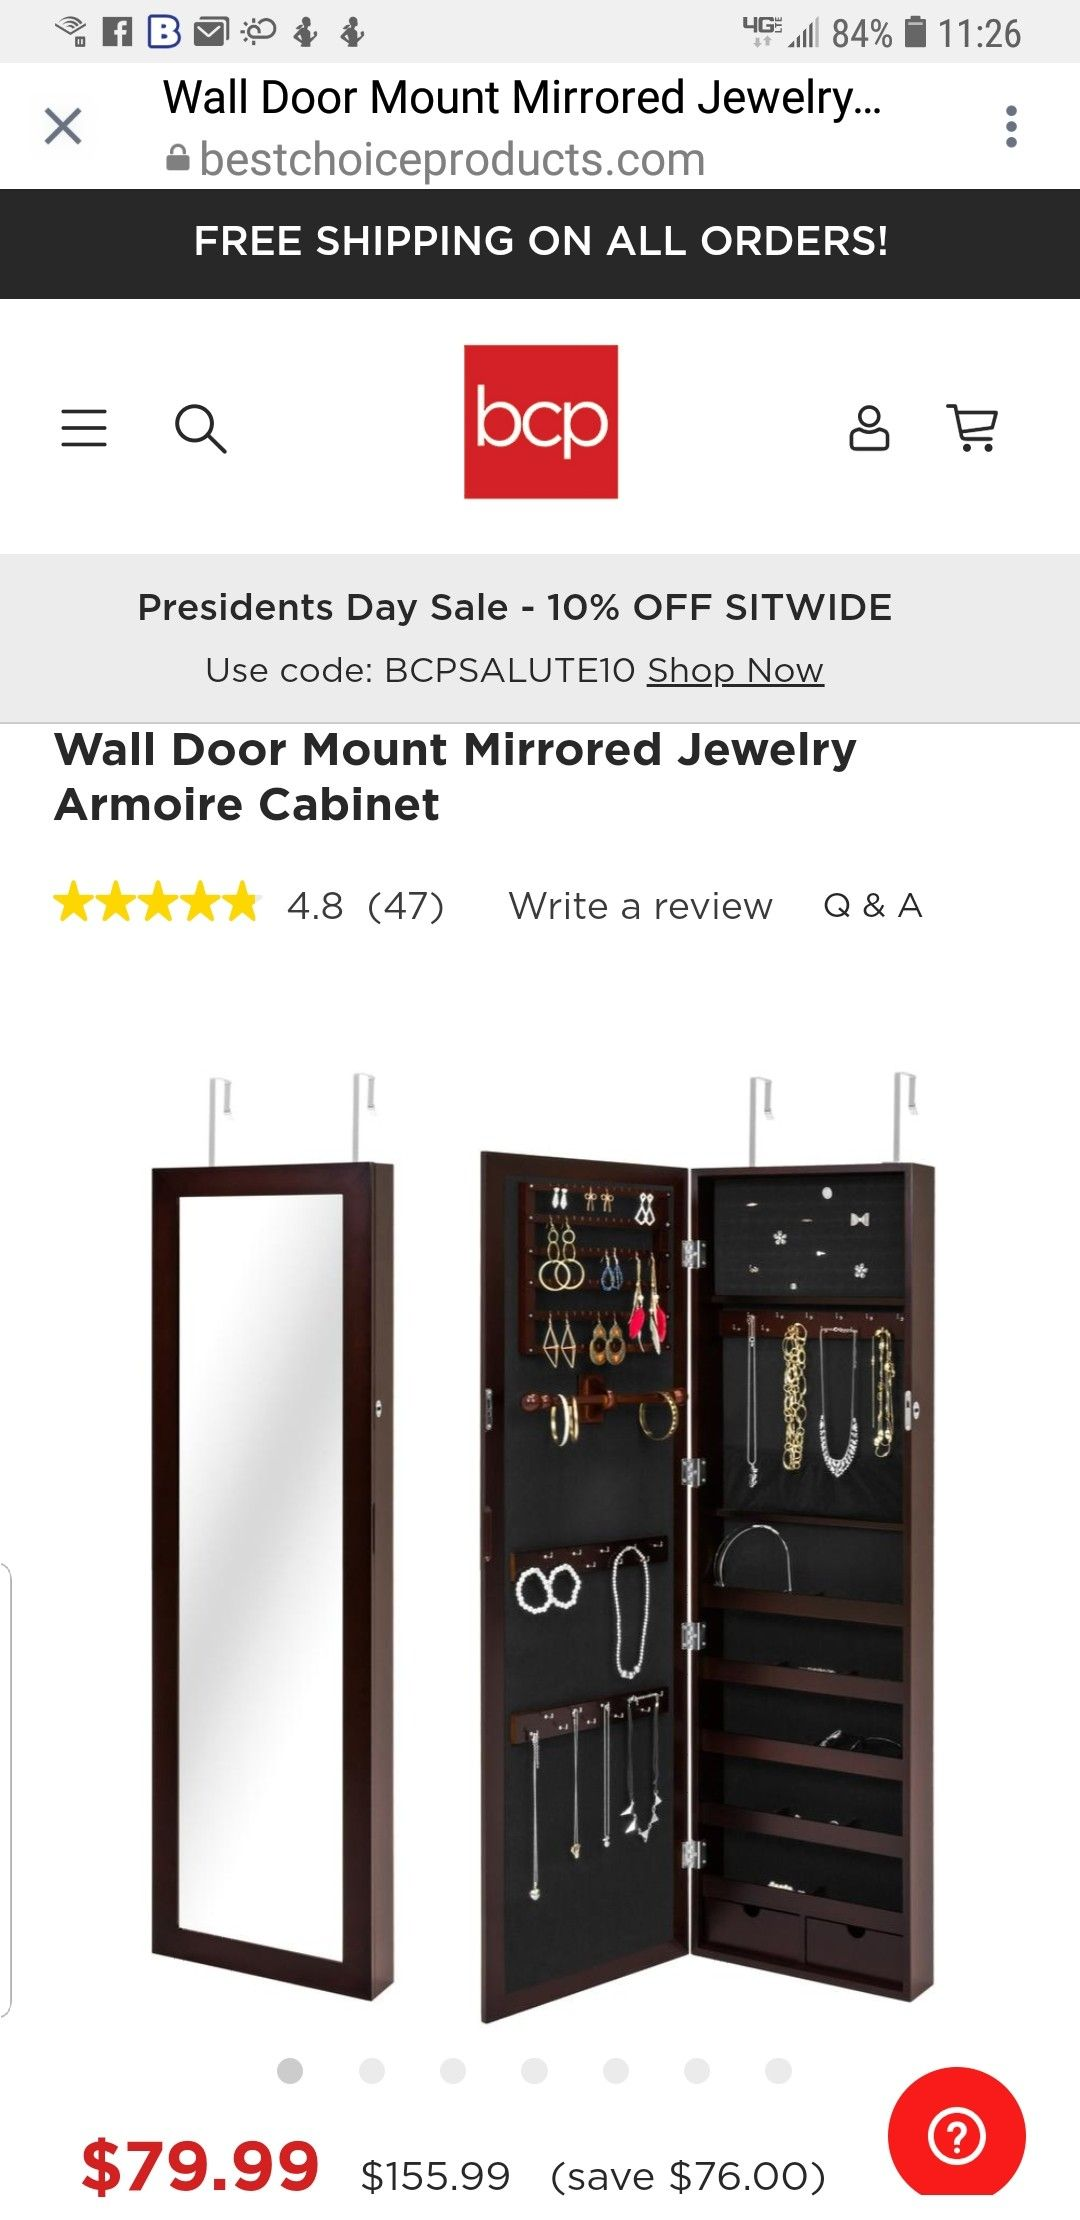 Pin by Alicia Jett on Shopping List Mirror jewelry